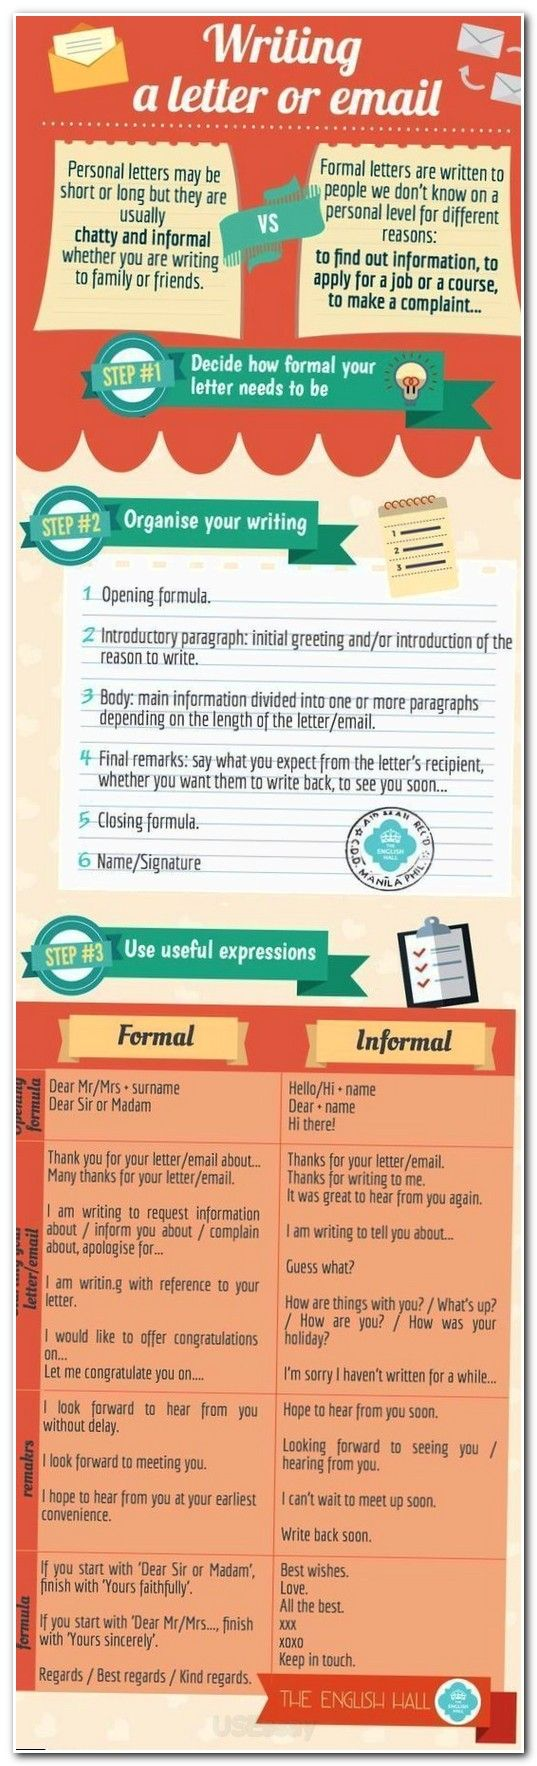 How to write an editorial opinion letter definition